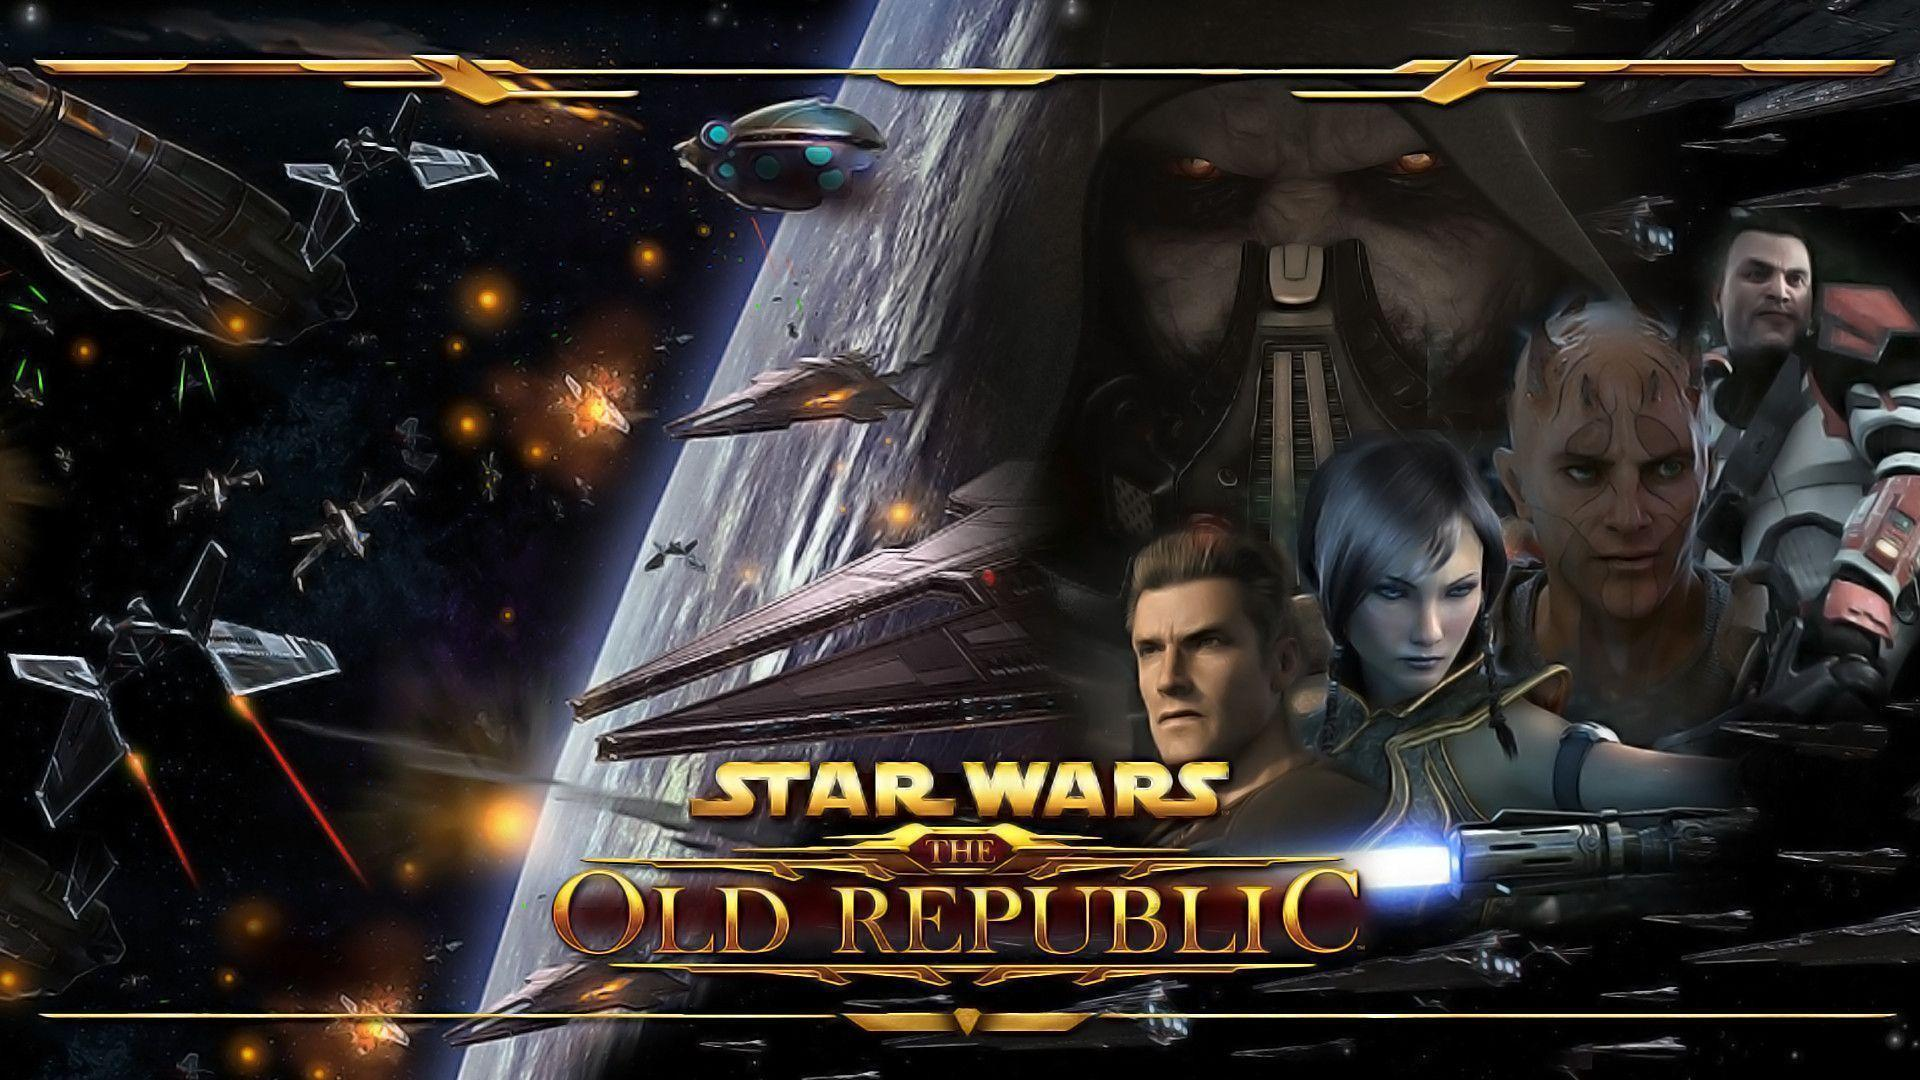 Star Wars Republic Wallpaper Posted By Michelle Tremblay